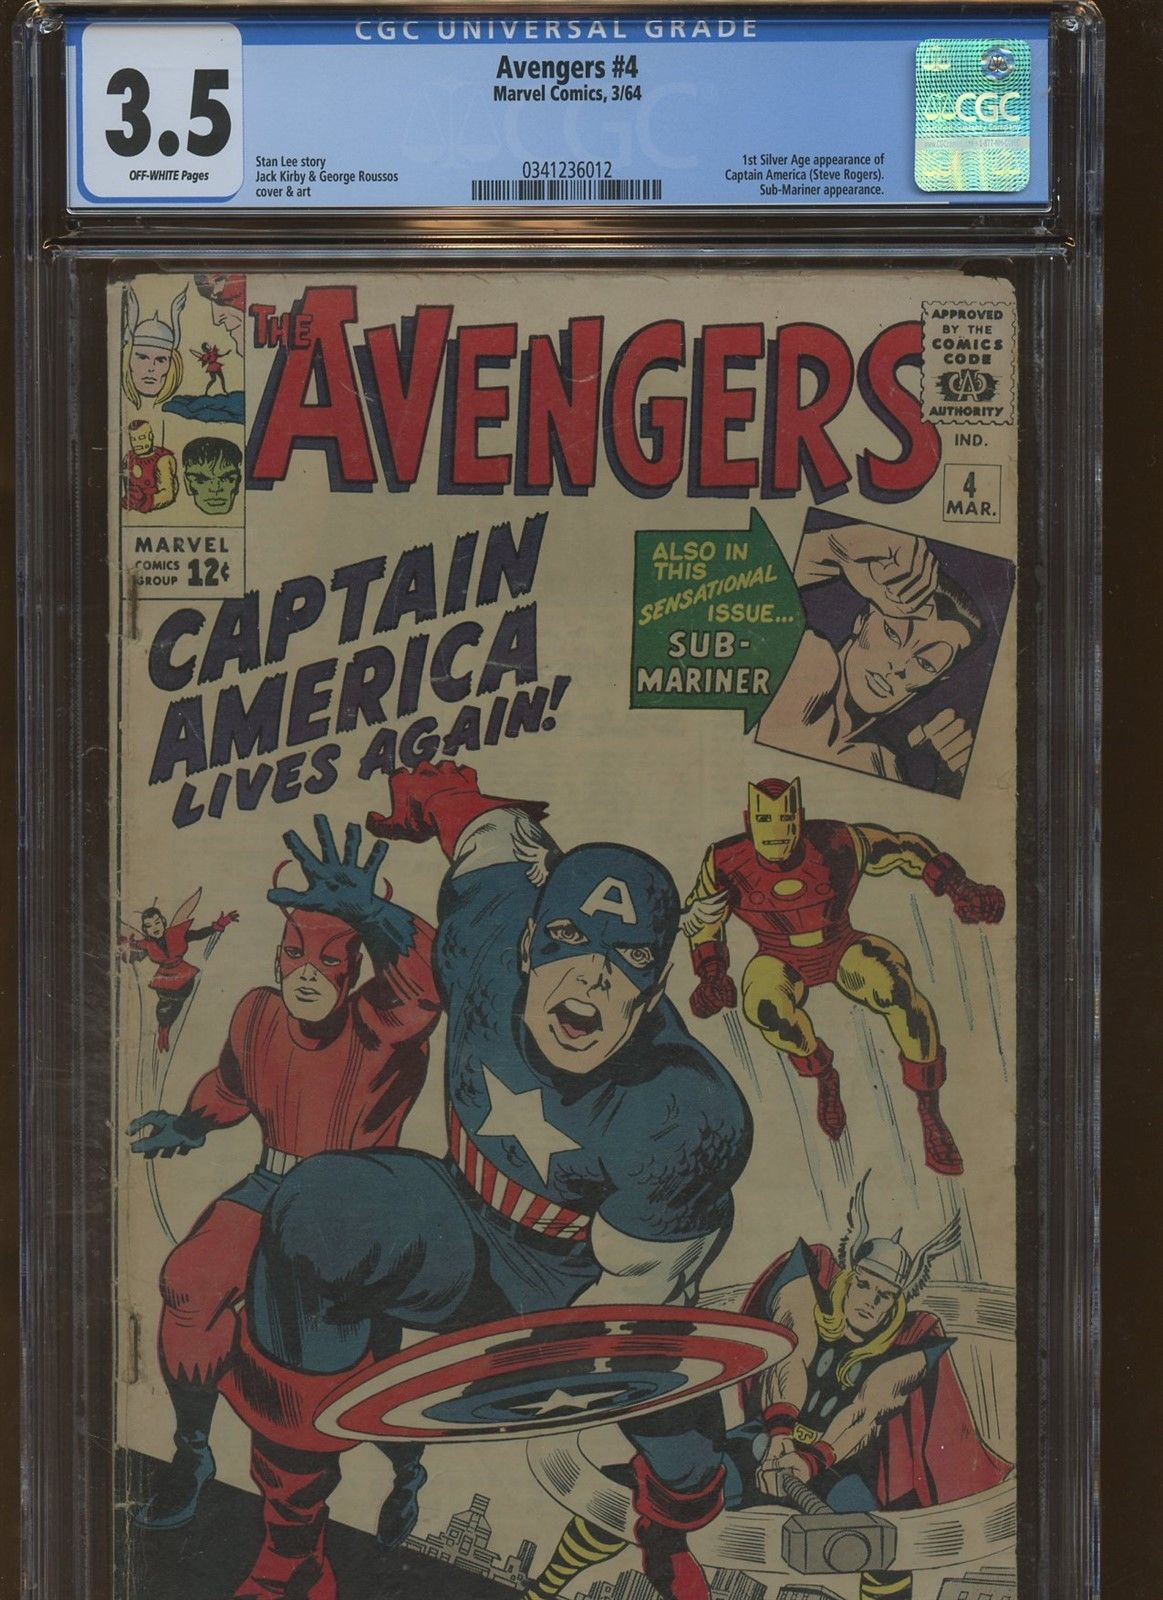 Avengers 4 CGC 3.5| Marvel 1964 | 1st Silver Age Captain America Appearance